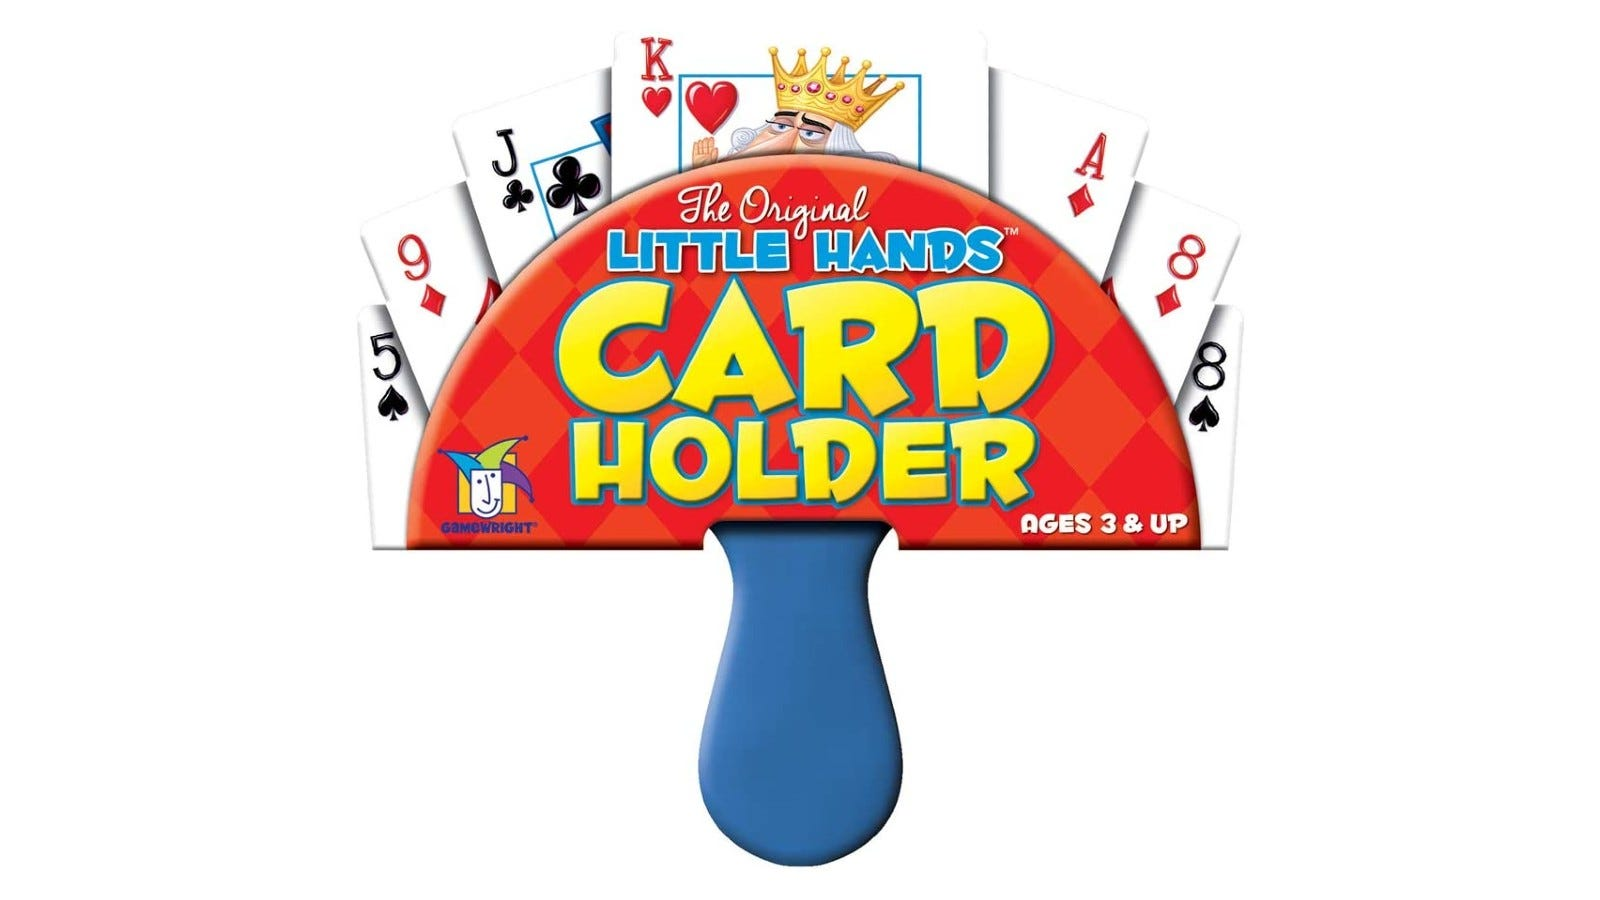 A small, children's playing card holder with cards in it